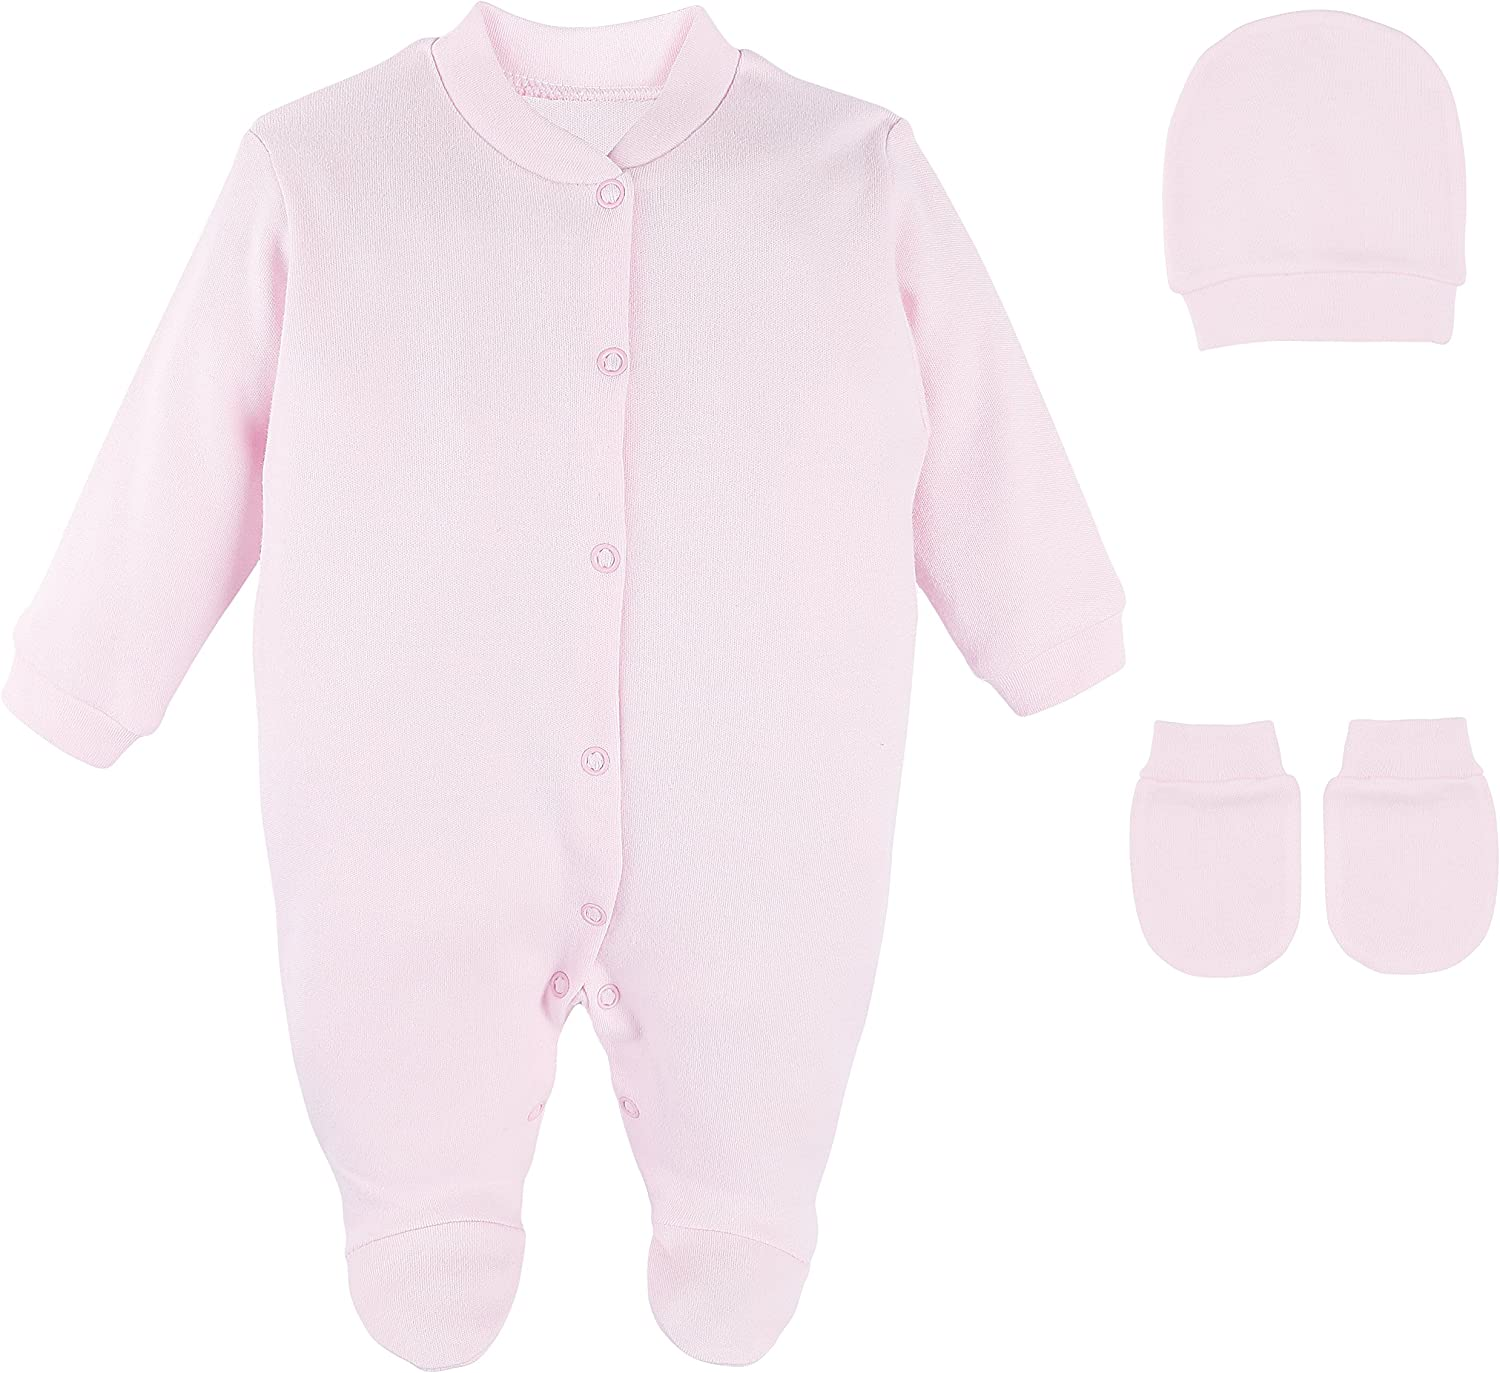 Lilax Baby Girl 3 Piece Solid Color Soft Cotton Footie Hat and Mittens Layette Gift Set